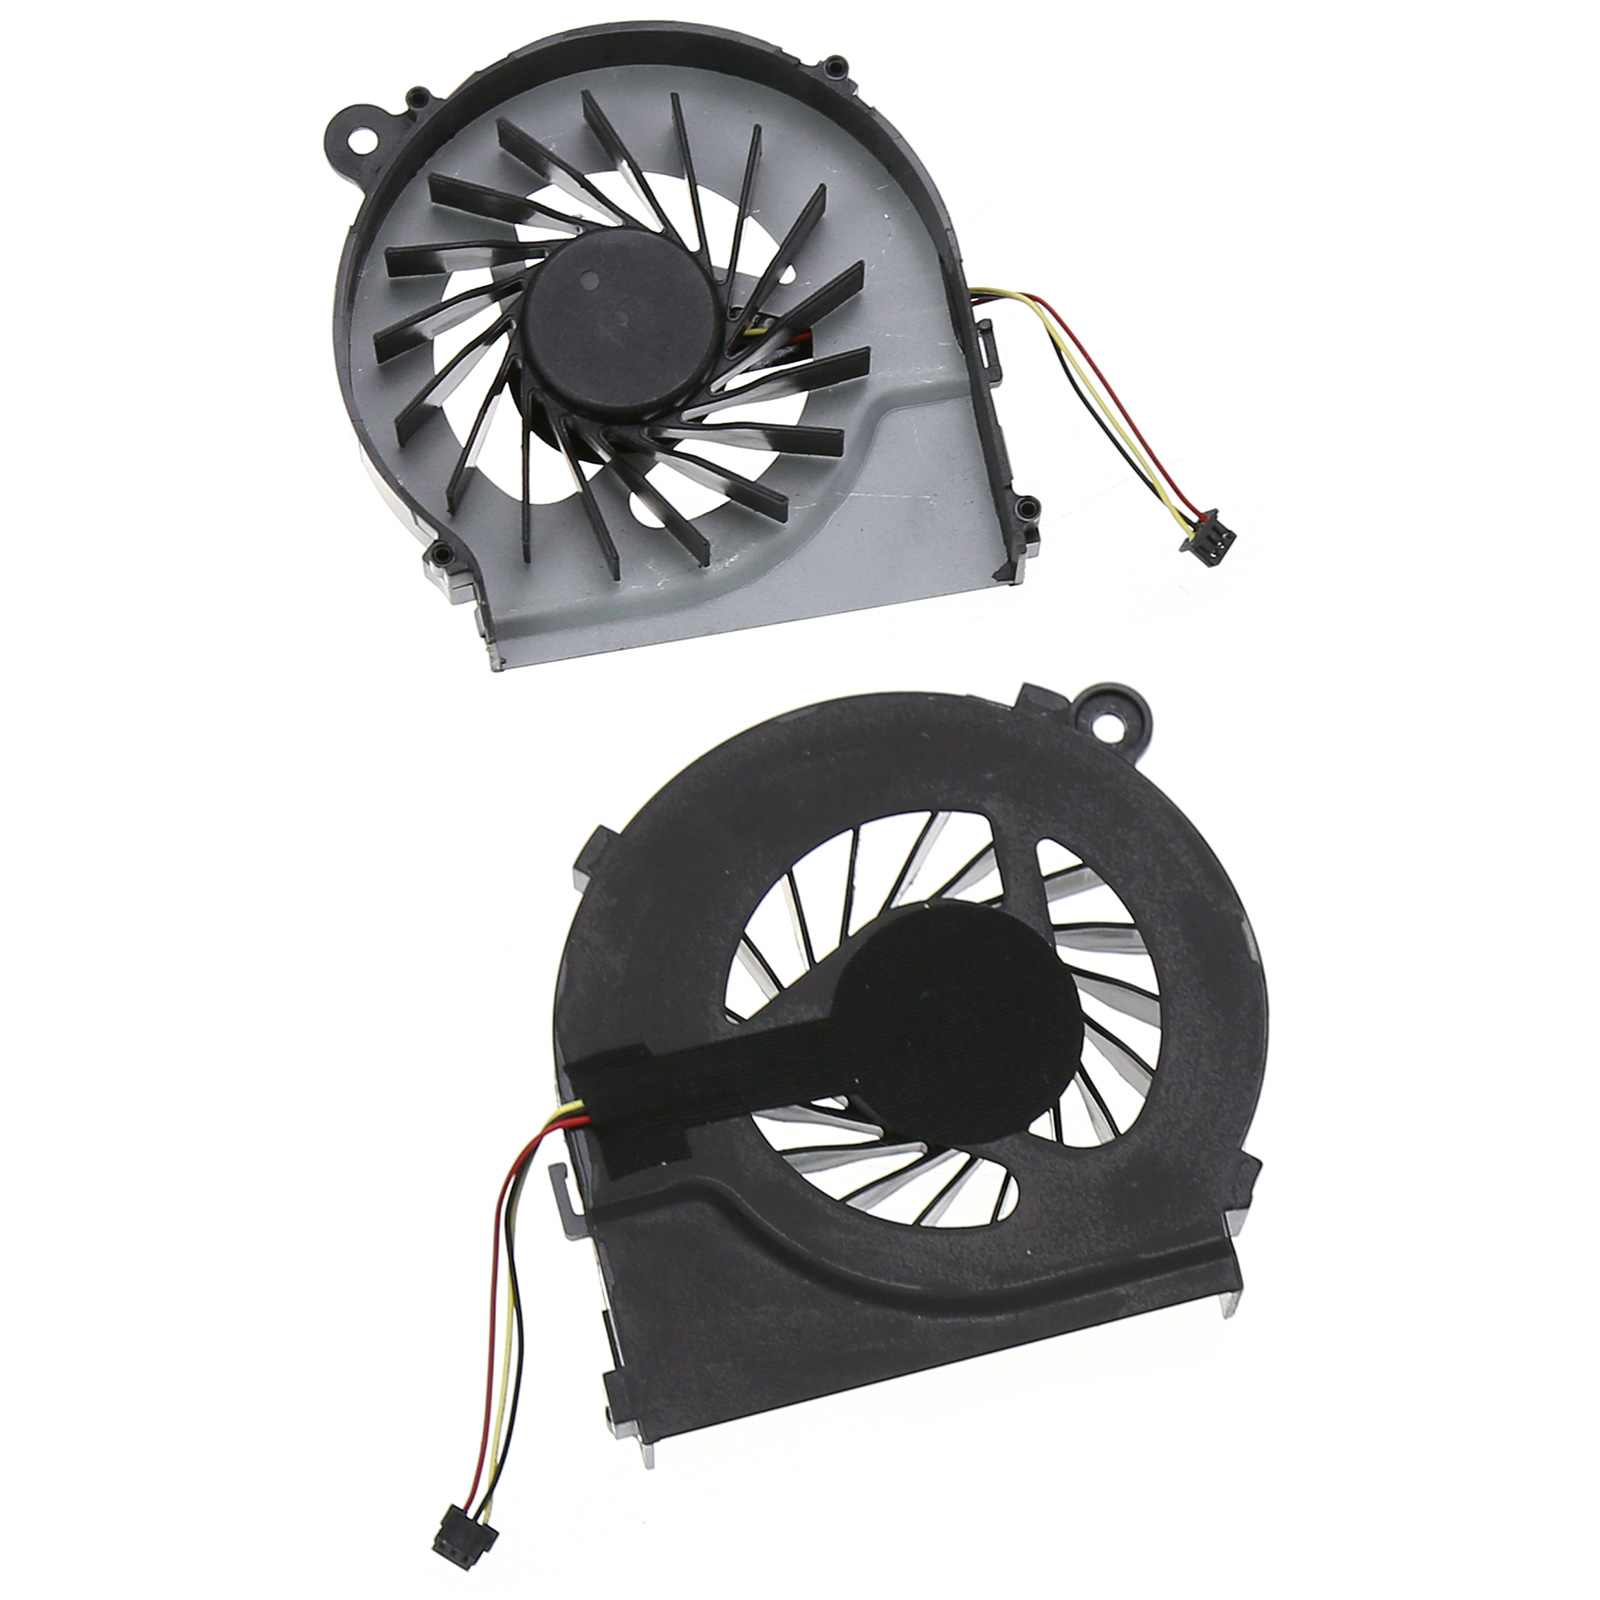 2017 Laptop CPU Cooler Cooling Fan PC cooling fan for G4-2000 G7 g7-2000 G6 G6-2000 G7-2240US FAR3300EPA KIPO 683193-001 image